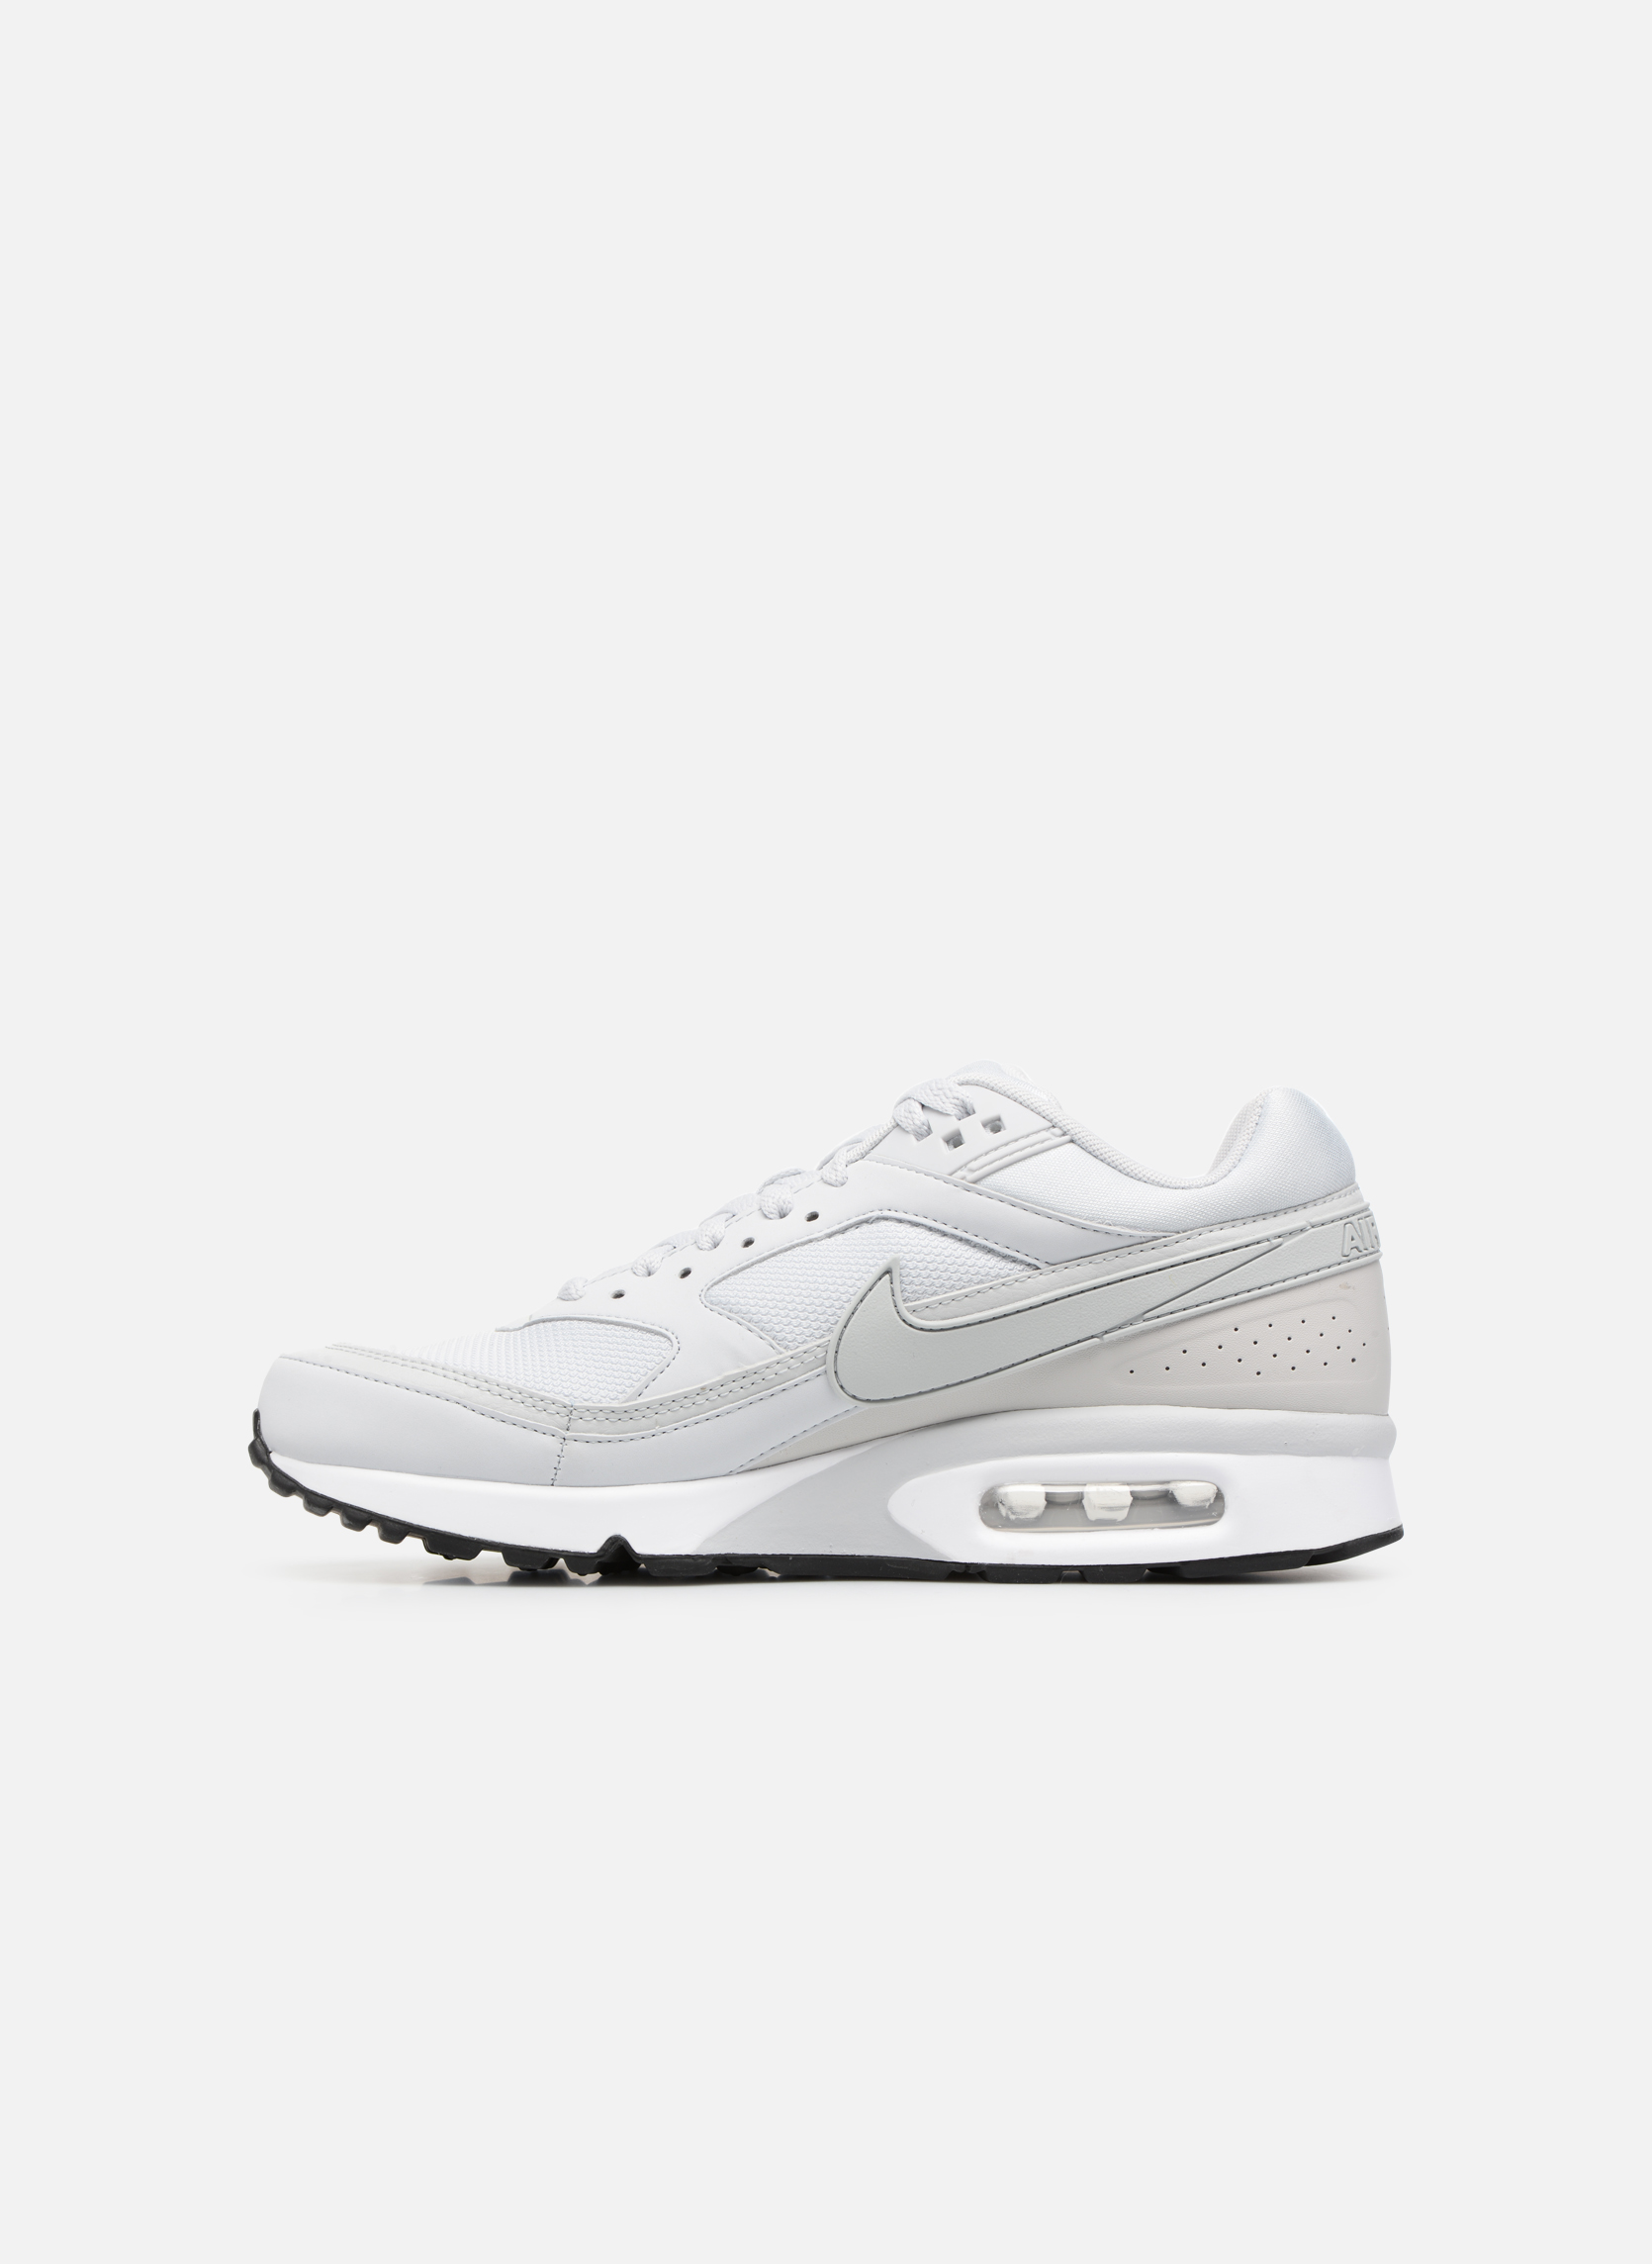 Nike Air Max Bw Pure Platinum/Pure Platinum-White-Black